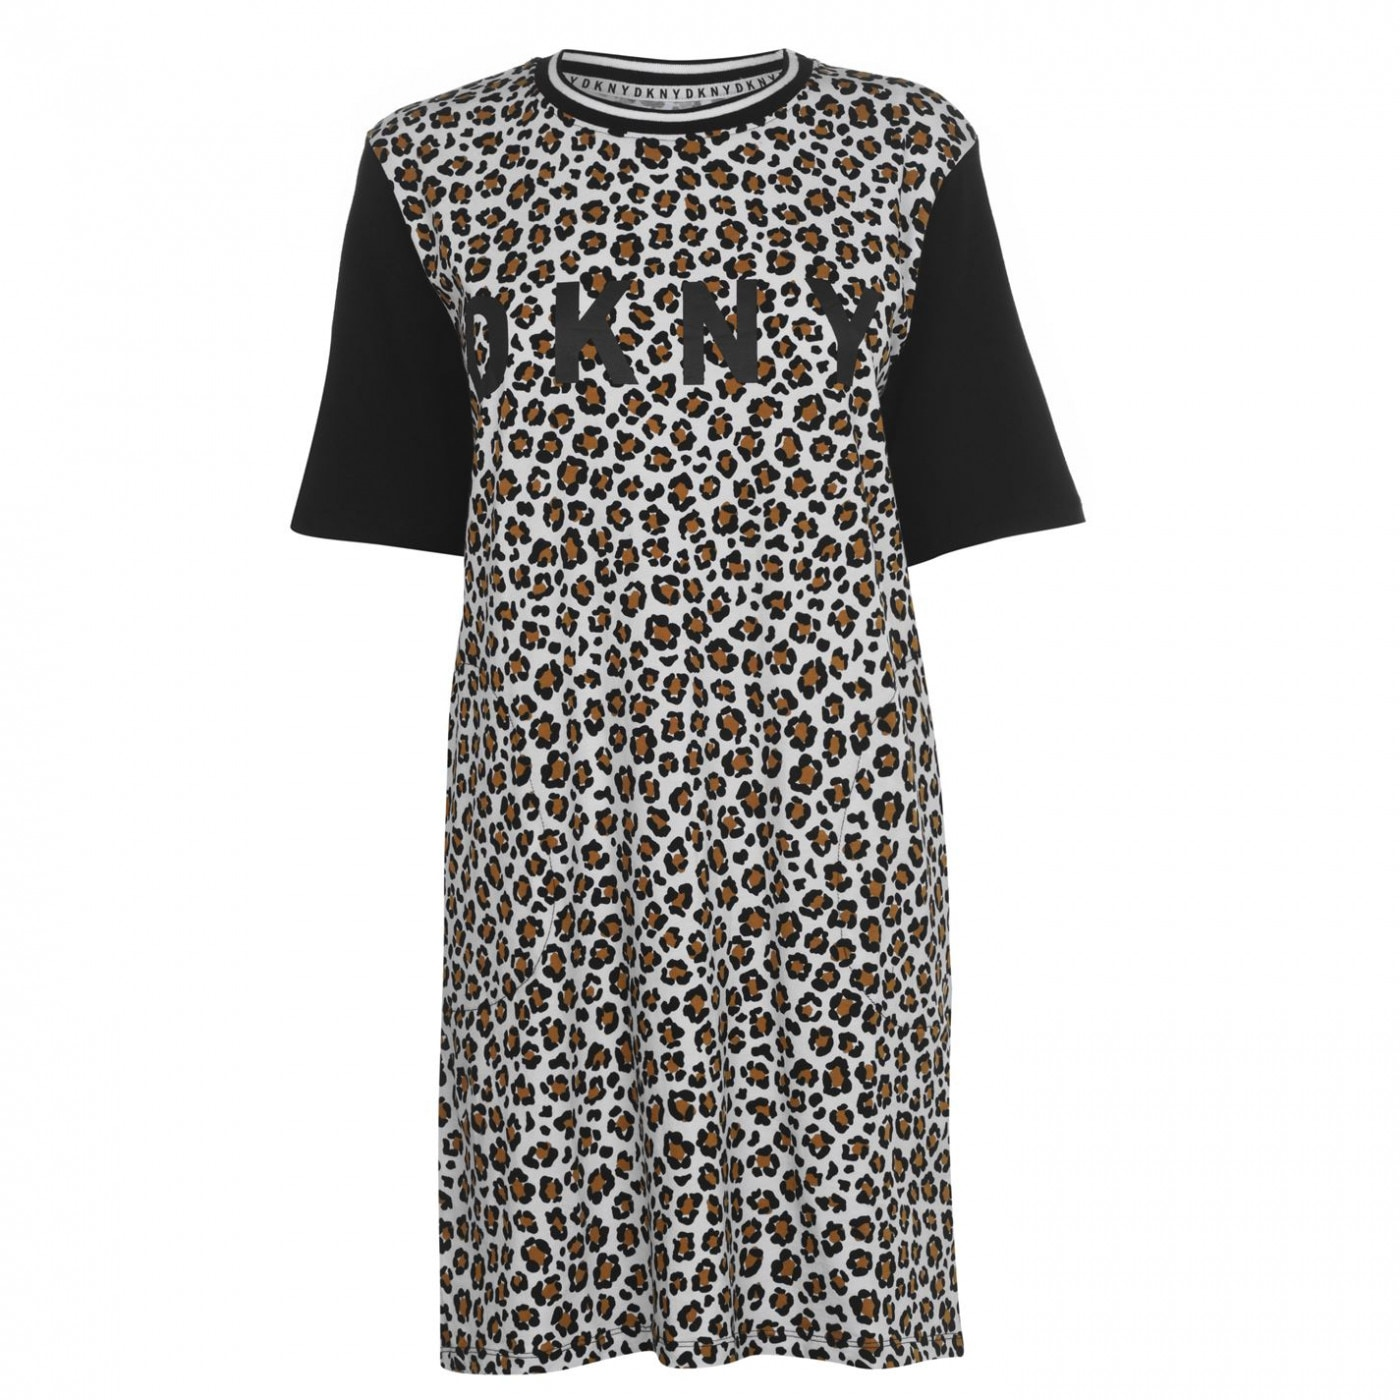 DKNY Leopard Sleep Shirt